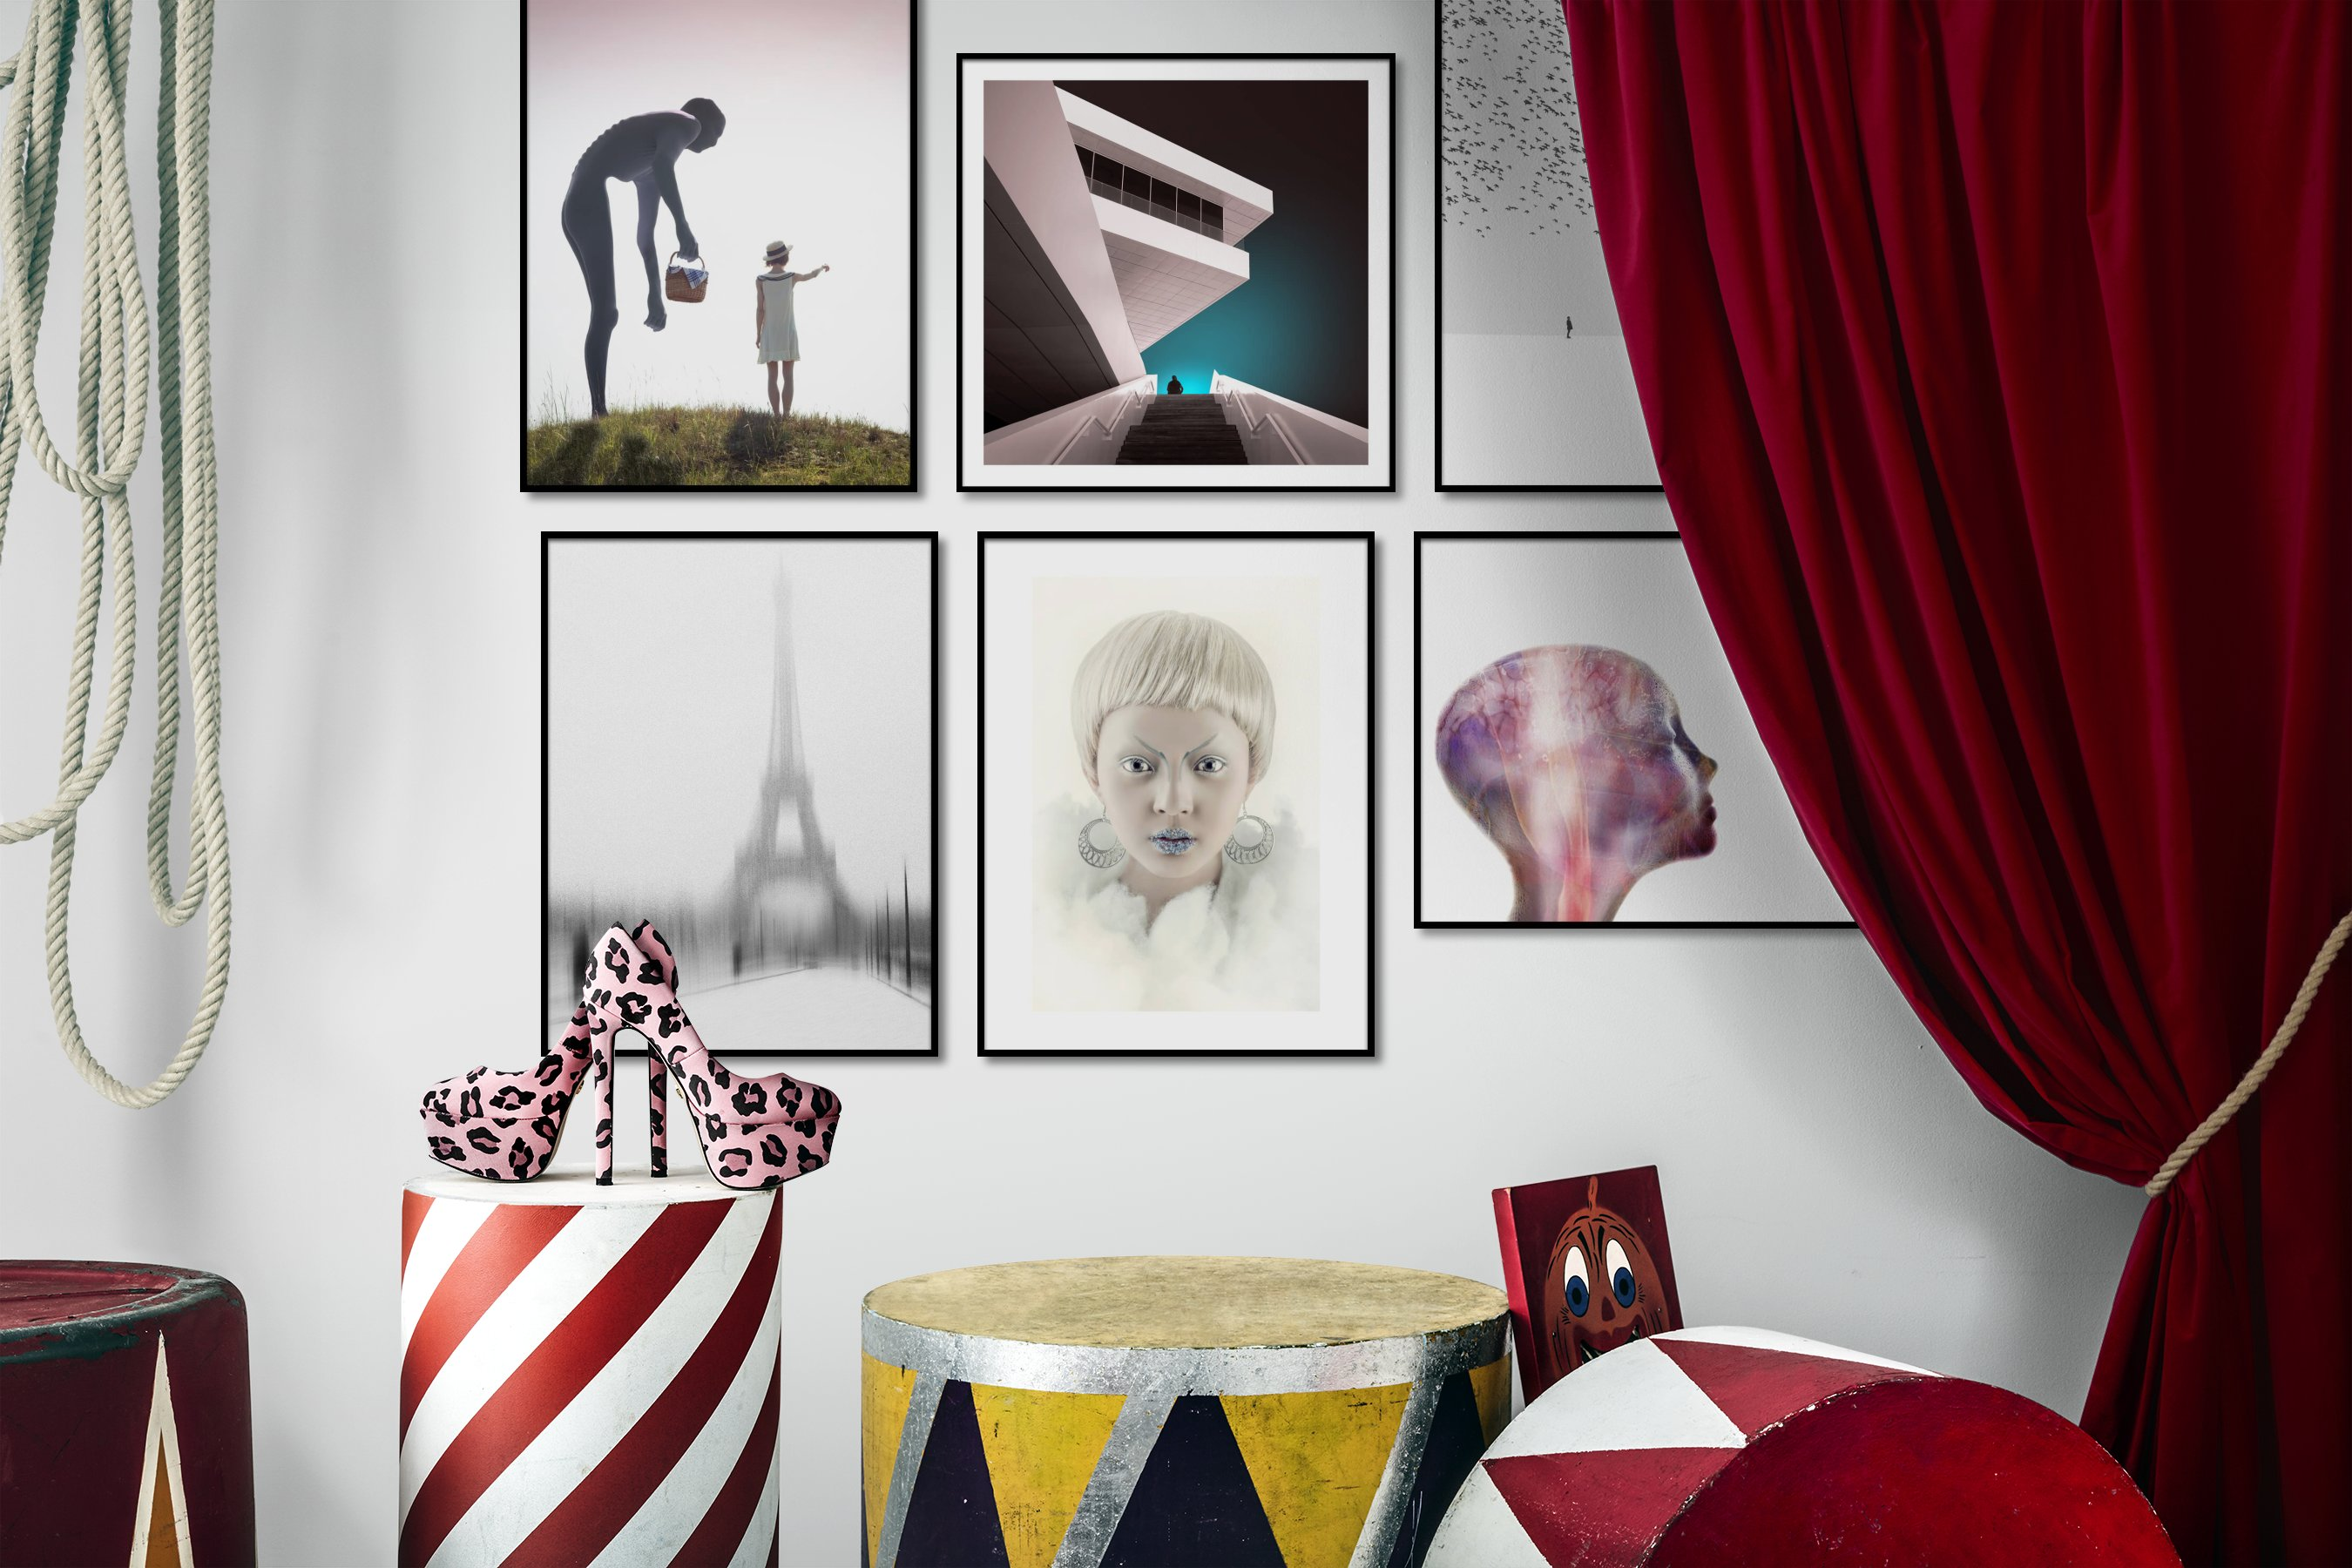 Gallery wall idea with six framed pictures arranged on a wall depicting Artsy, Country Life, Black & White, Bright Tones, For the Minimalist, City Life, Fashion & Beauty, Animals, and Mindfulness